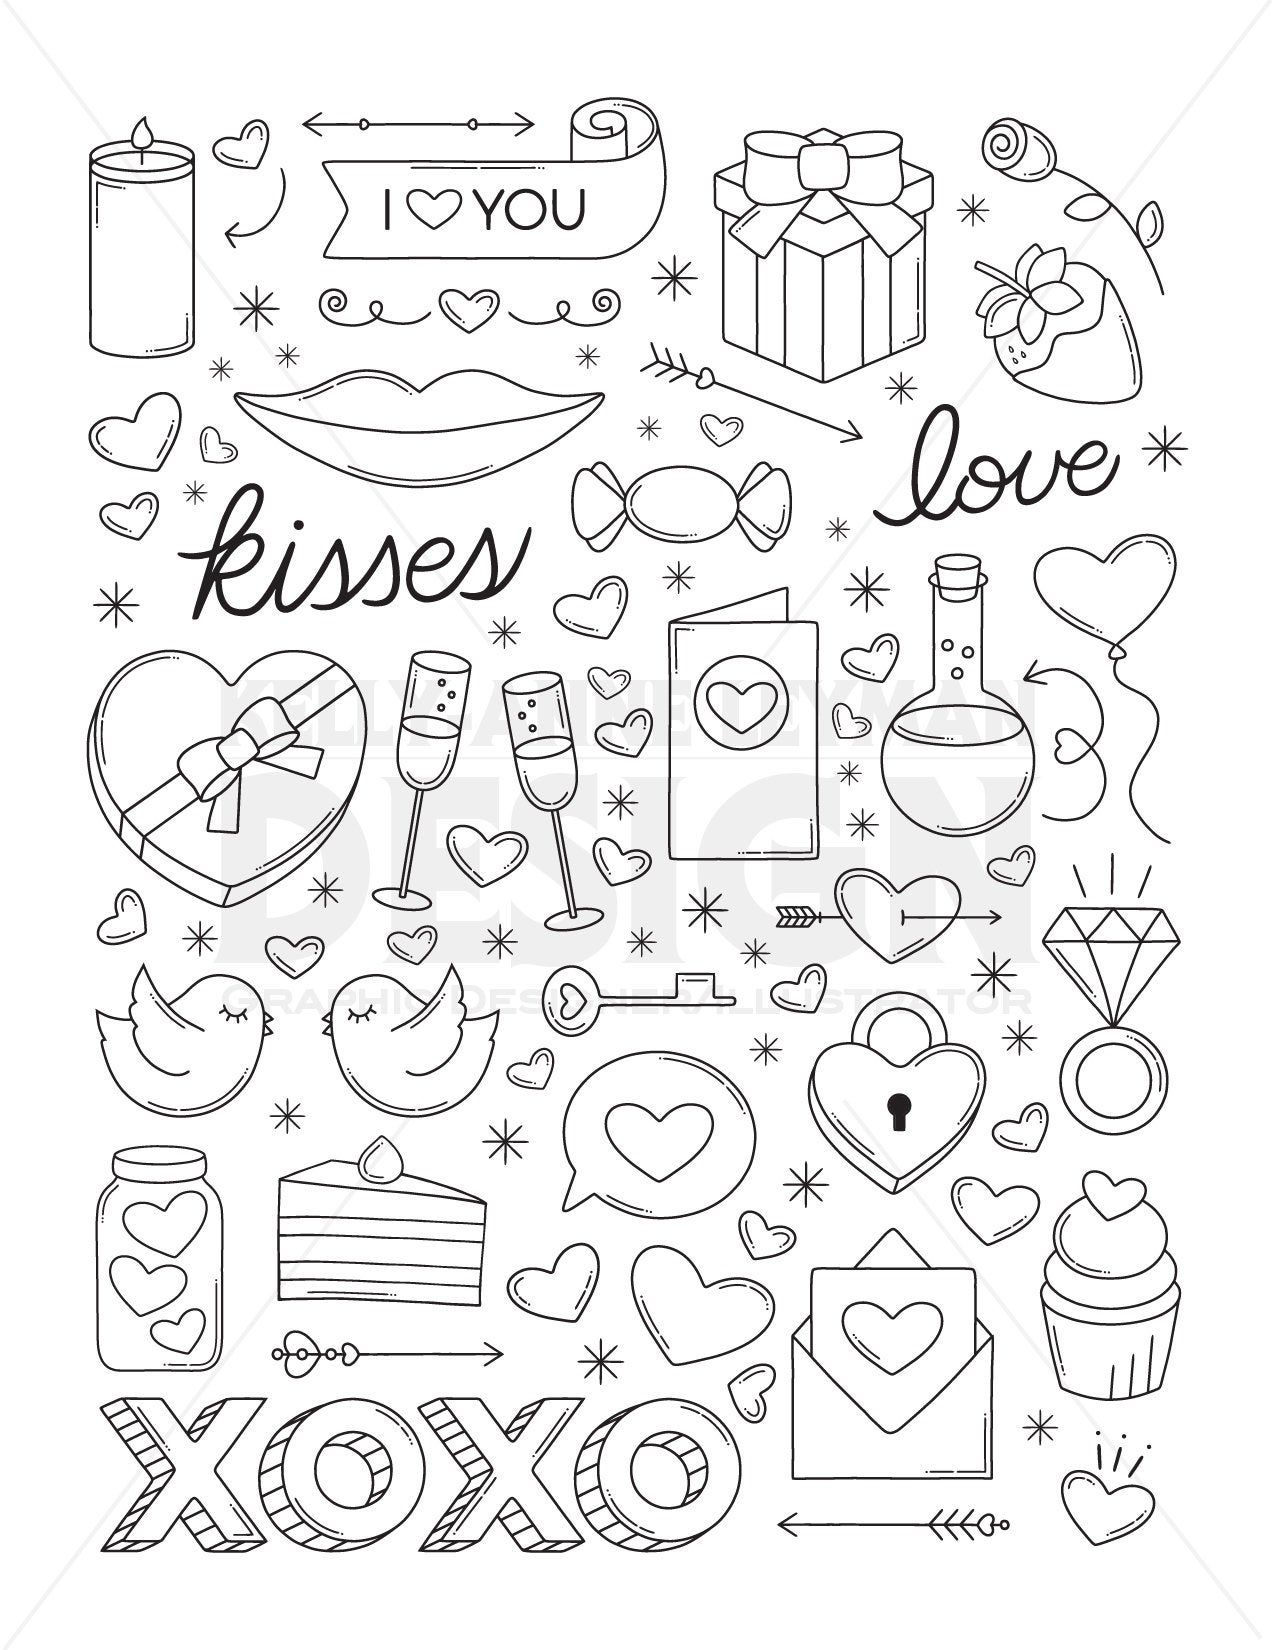 Love Printable Coloring Pages For Adults Retro Coloring Page Etsy In 2021 Printable Coloring Pages Coloring Pages Unique Coloring Pages